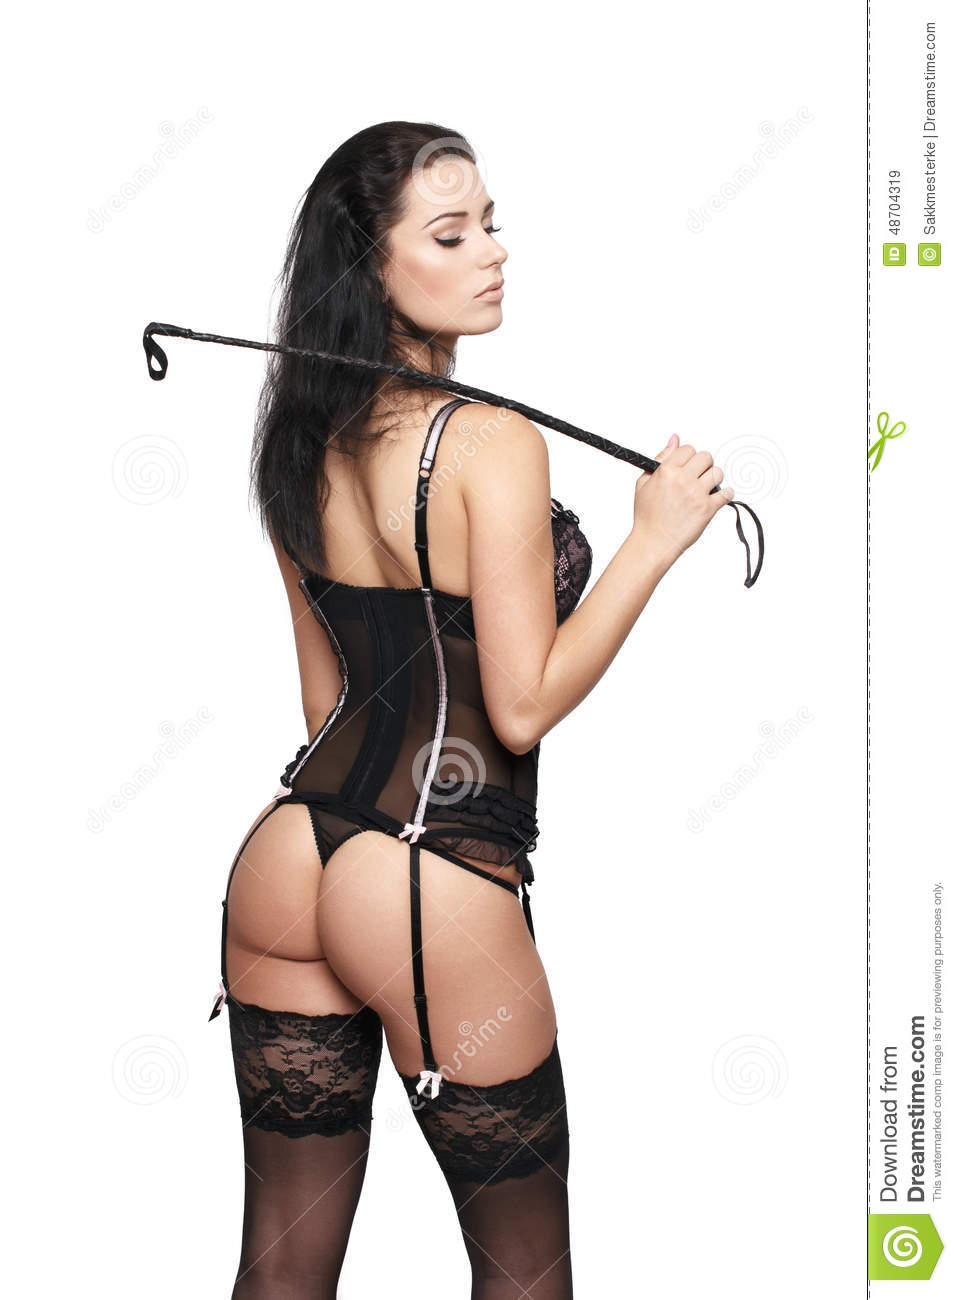 Erotic strip and whip